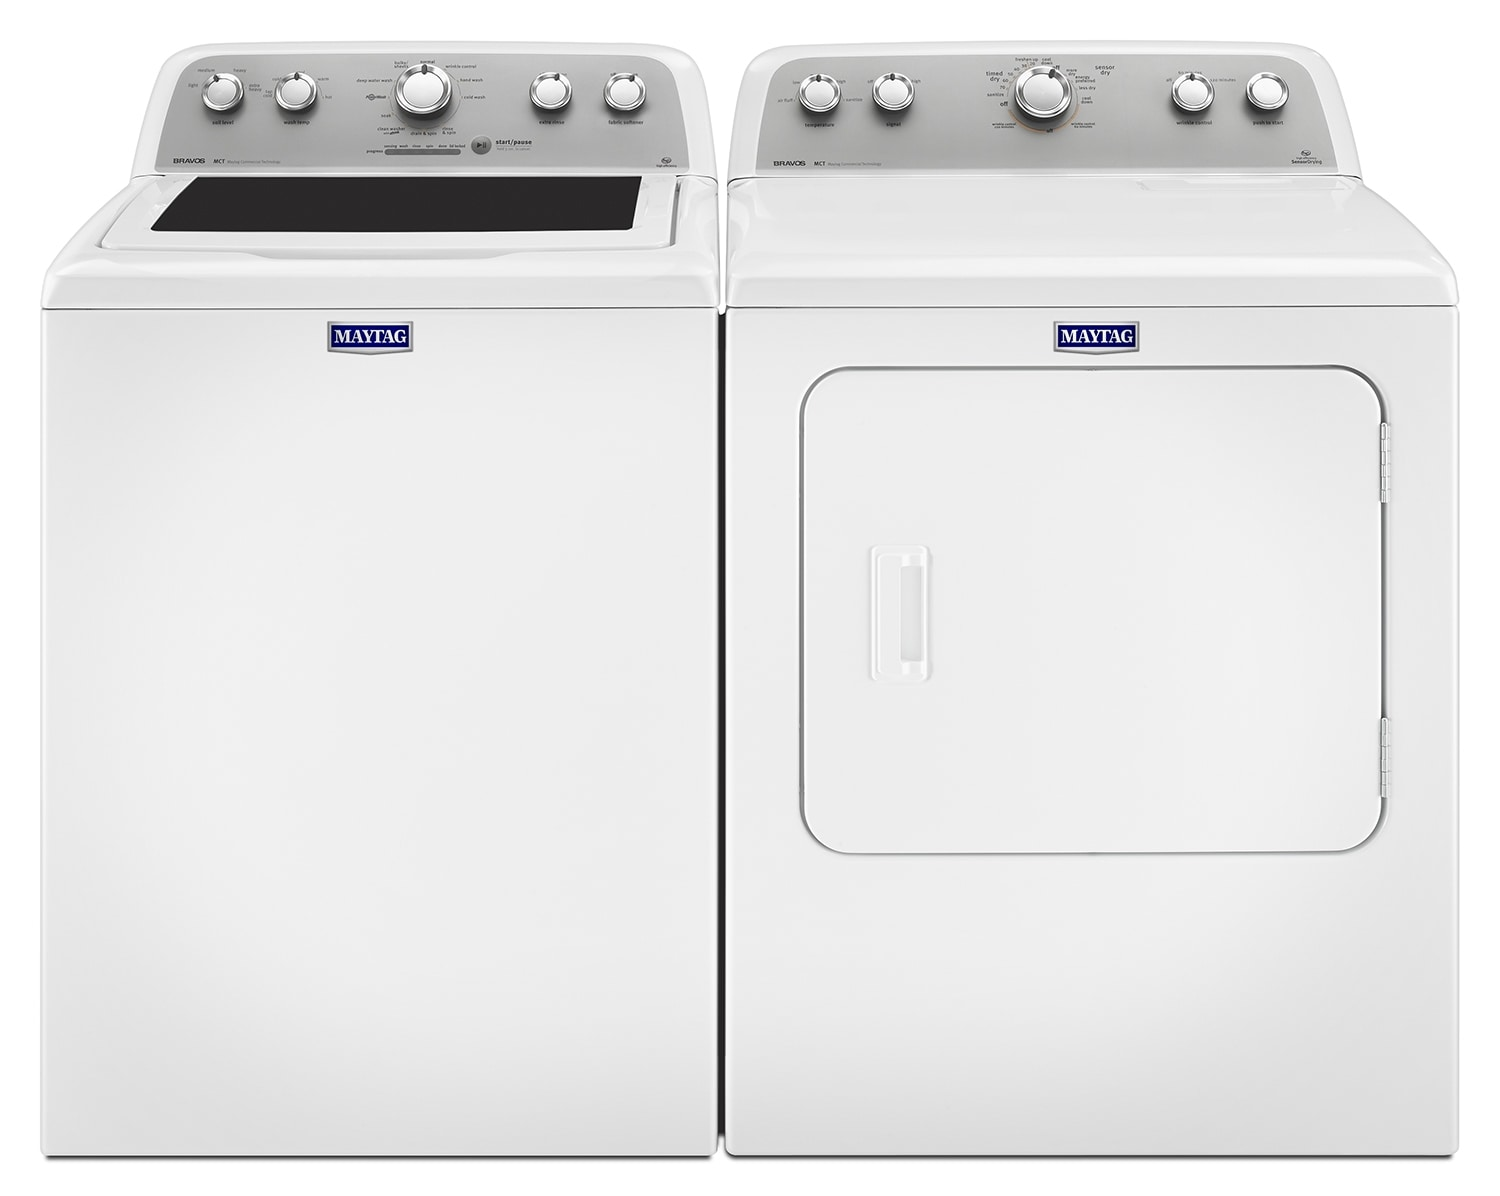 The Maytag MA655LDY Laundry Collection